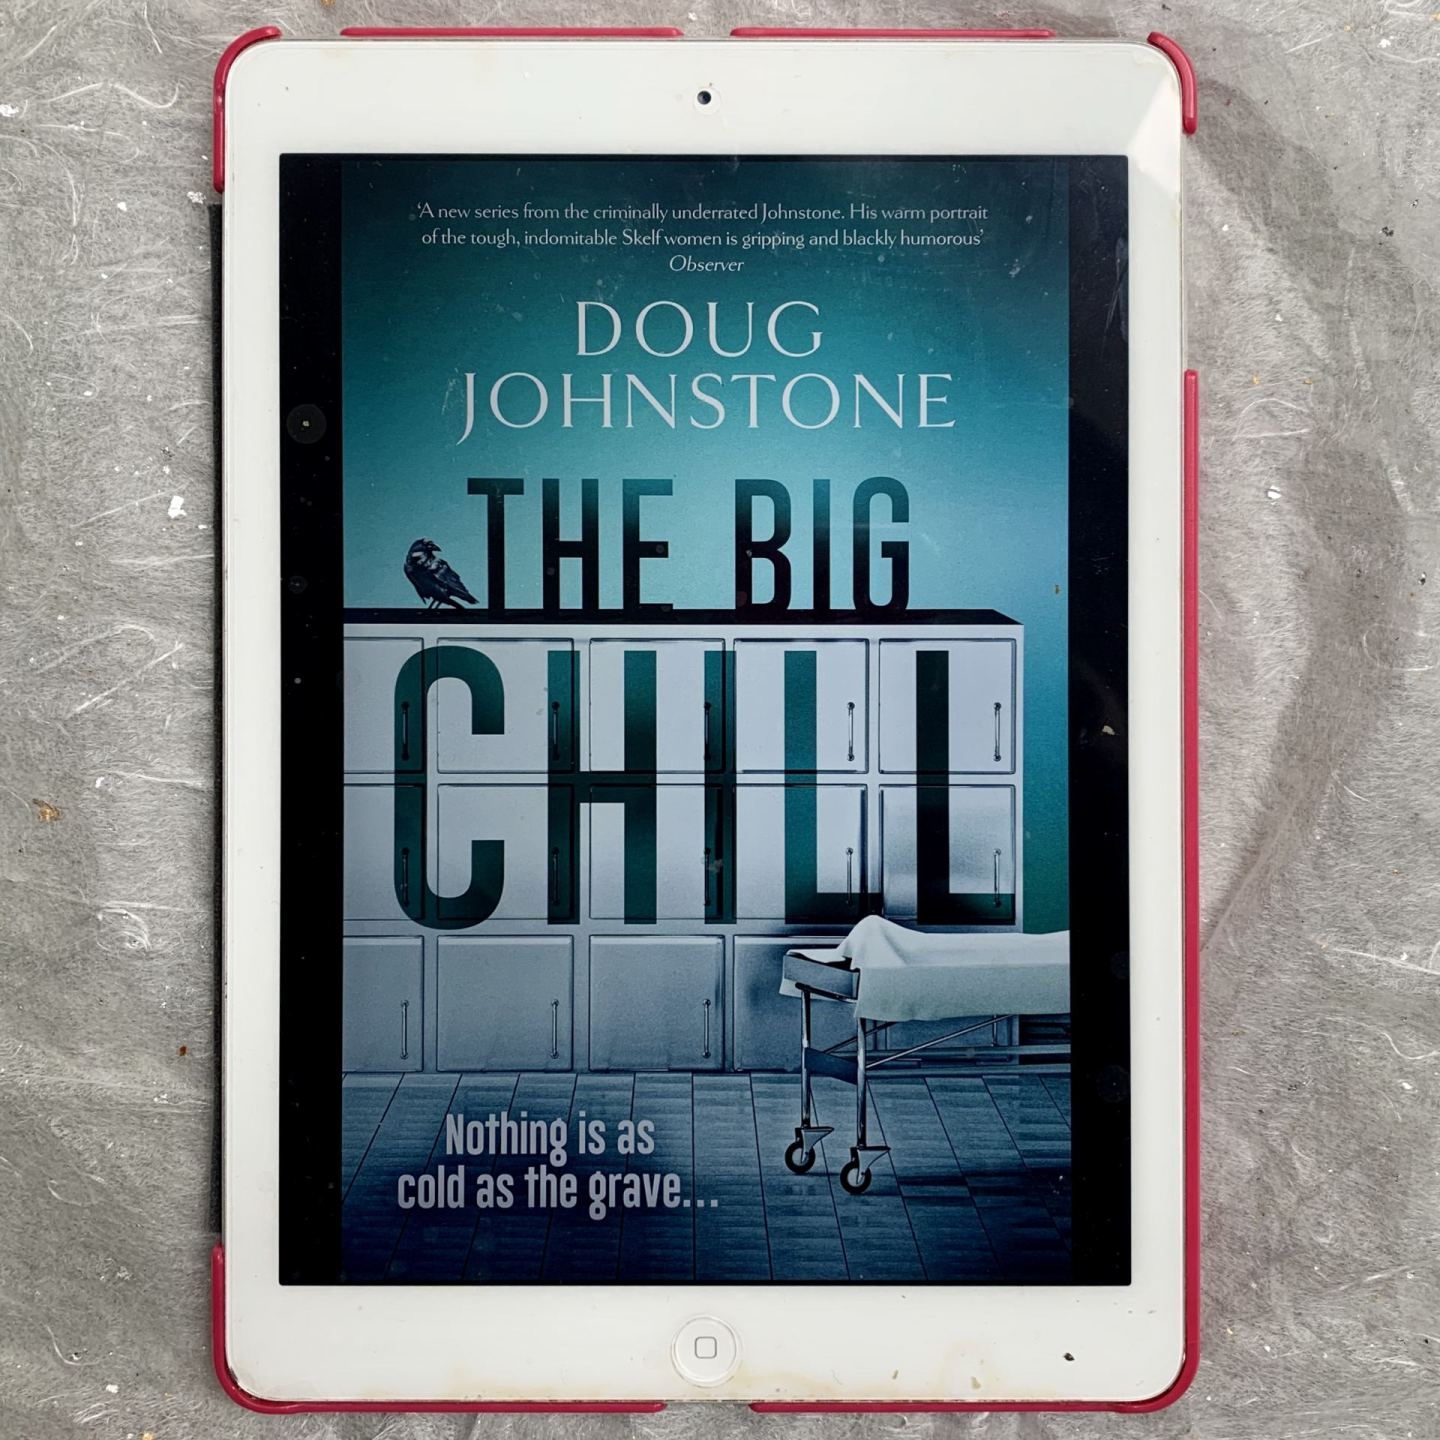 The Big Chill; a cracking crime sequel